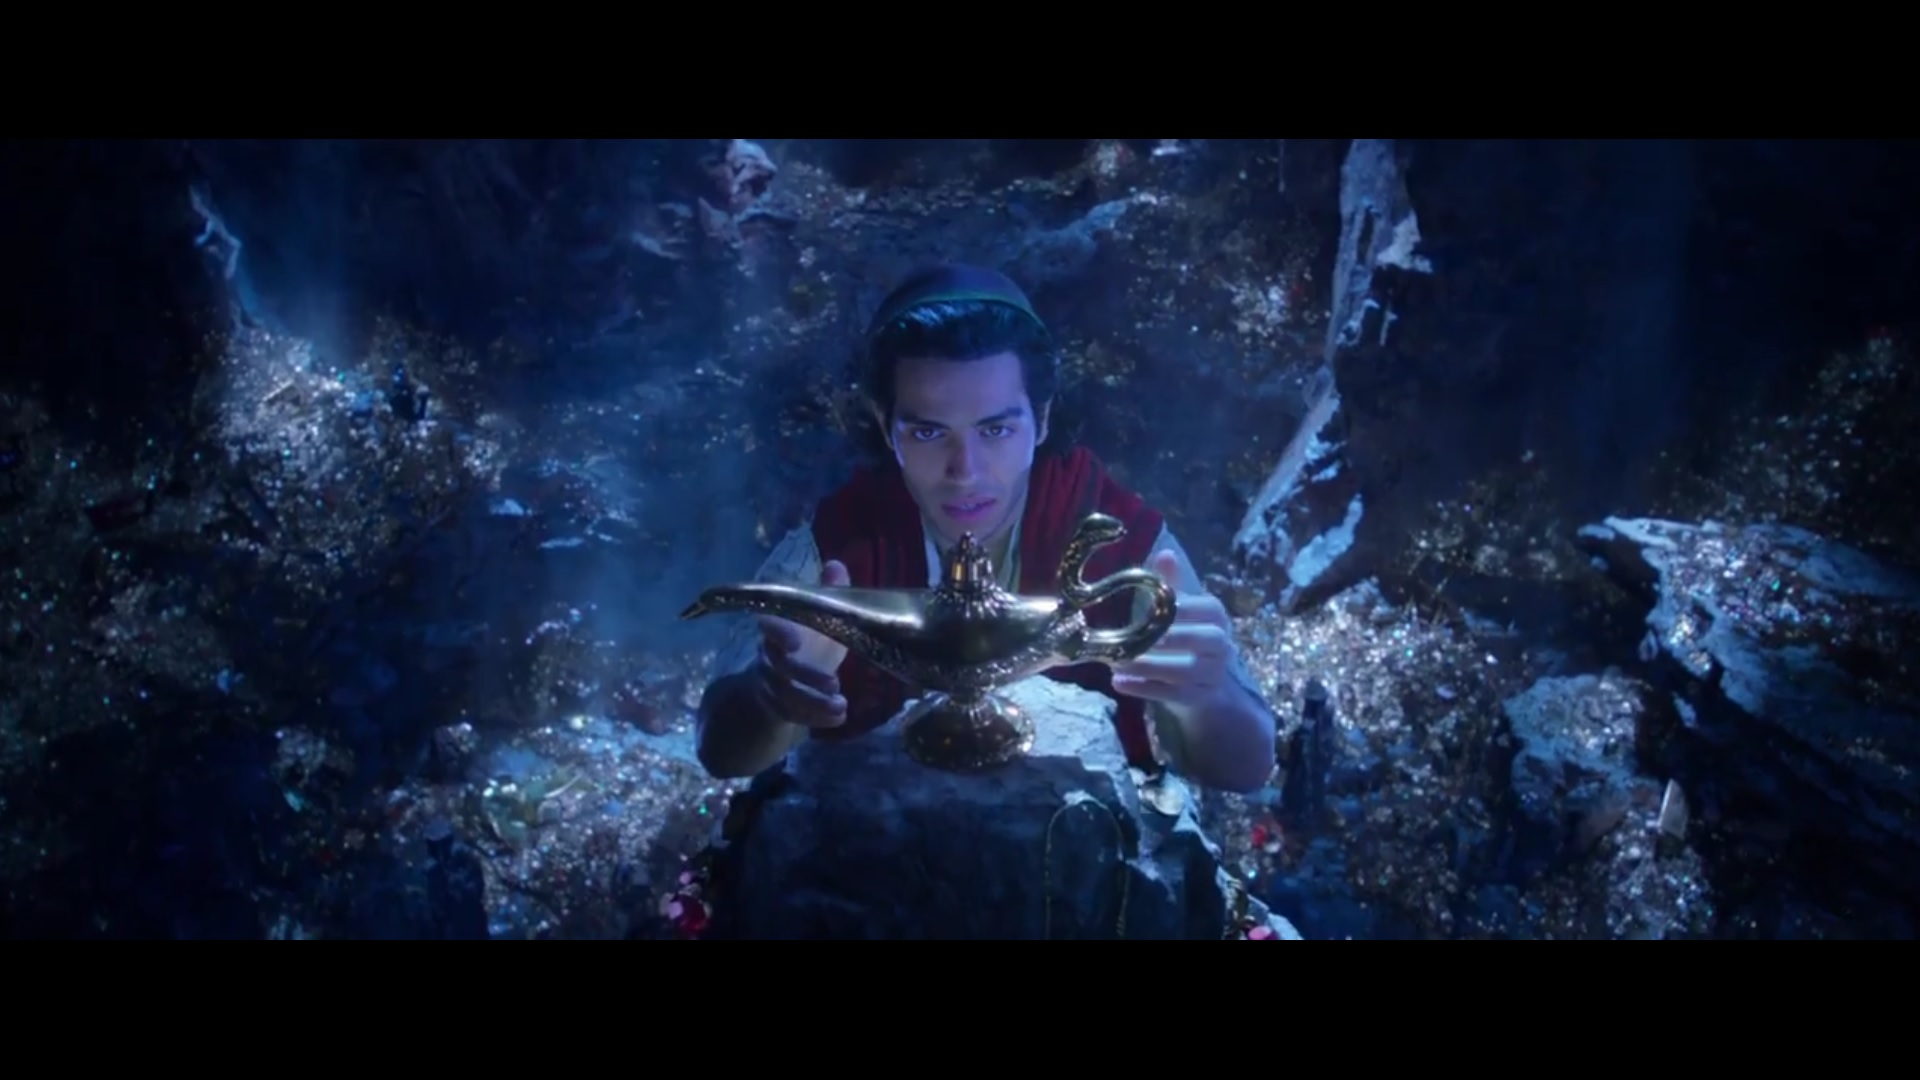 Here's our first glimpse of 2019's Aladdin screenshot